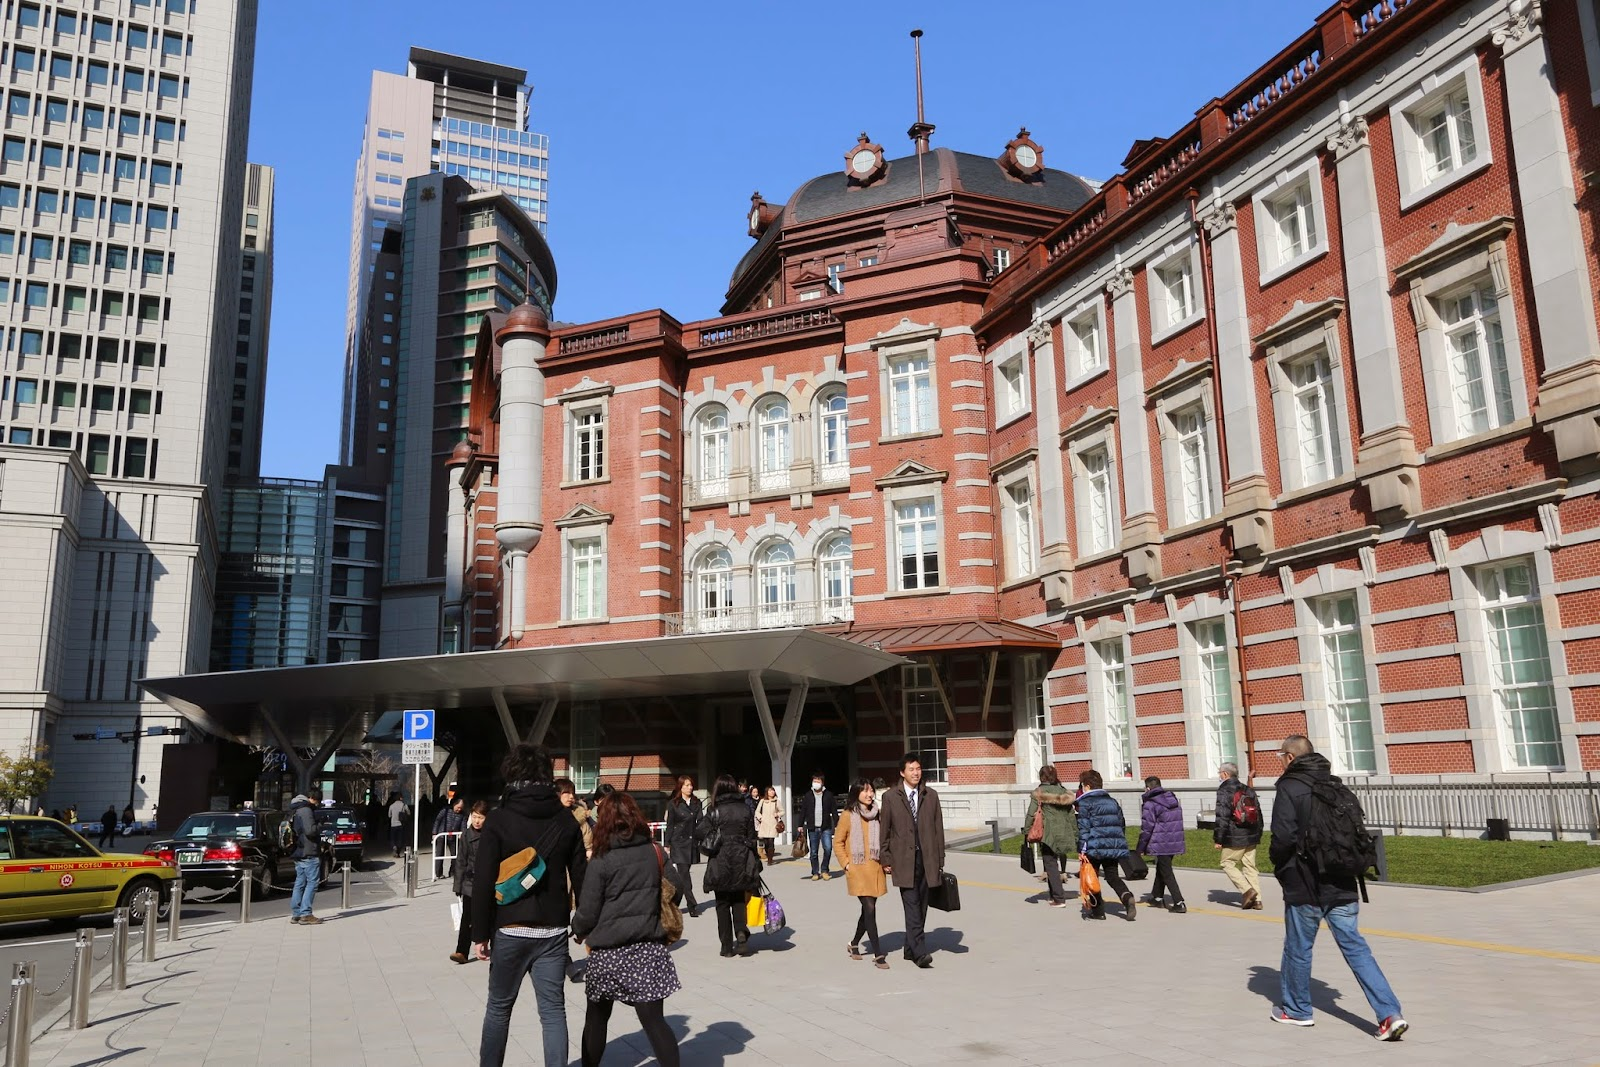 A 100 years old Tokyo Station is the busiest station in Japan, with Tokyo Metro and Tokaido Shinkansen (JR high-speed bullet train) lines